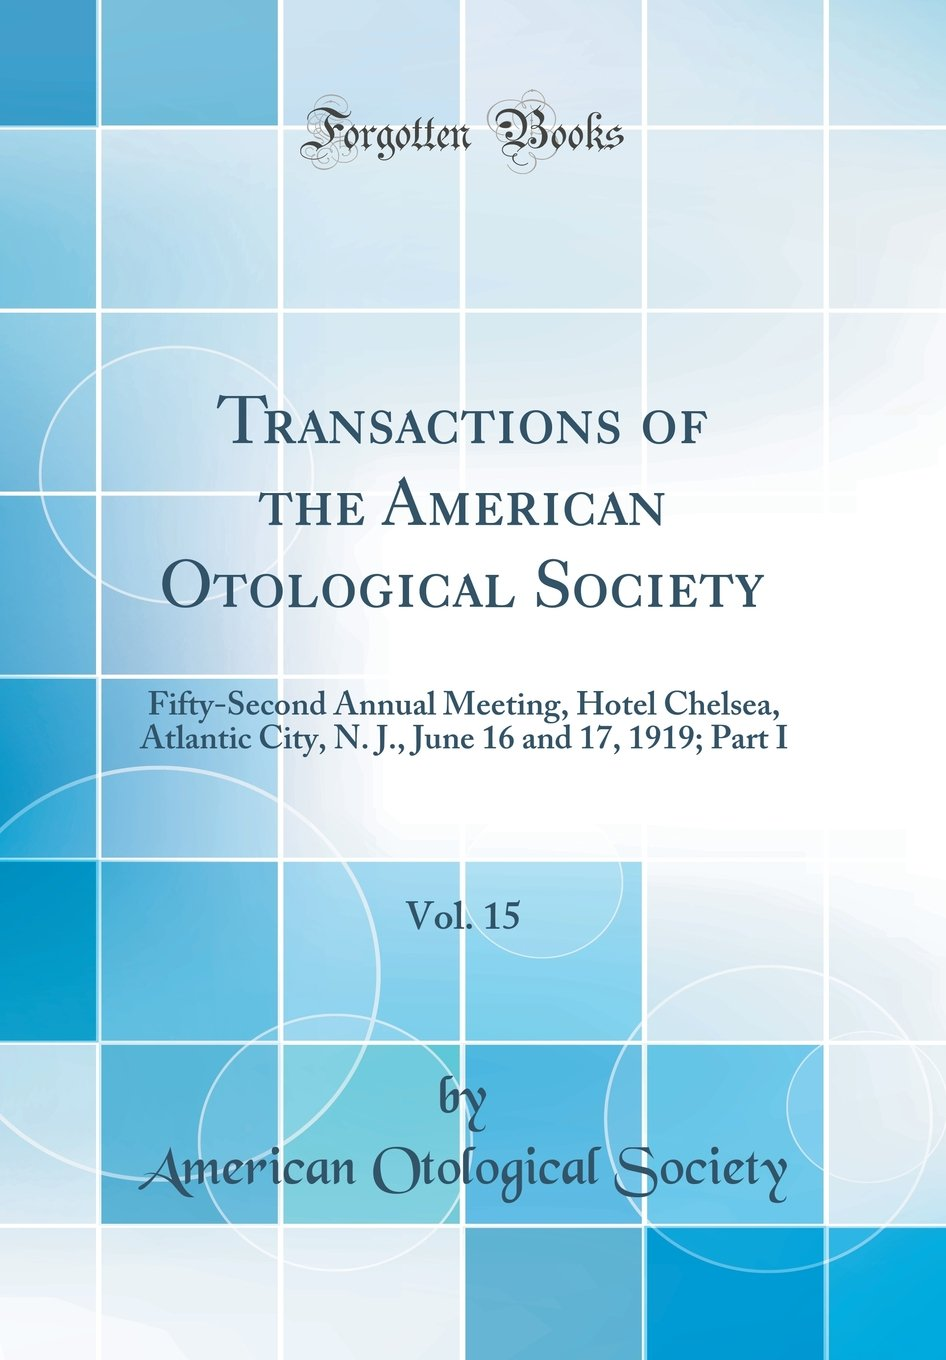 Transactions of the American Otological Society, Vol. 15: Fifty-Second Annual Meeting, Hotel Chelsea, Atlantic City, N. J., June 16 and 17, 1919; Part I (Classic Reprint) pdf